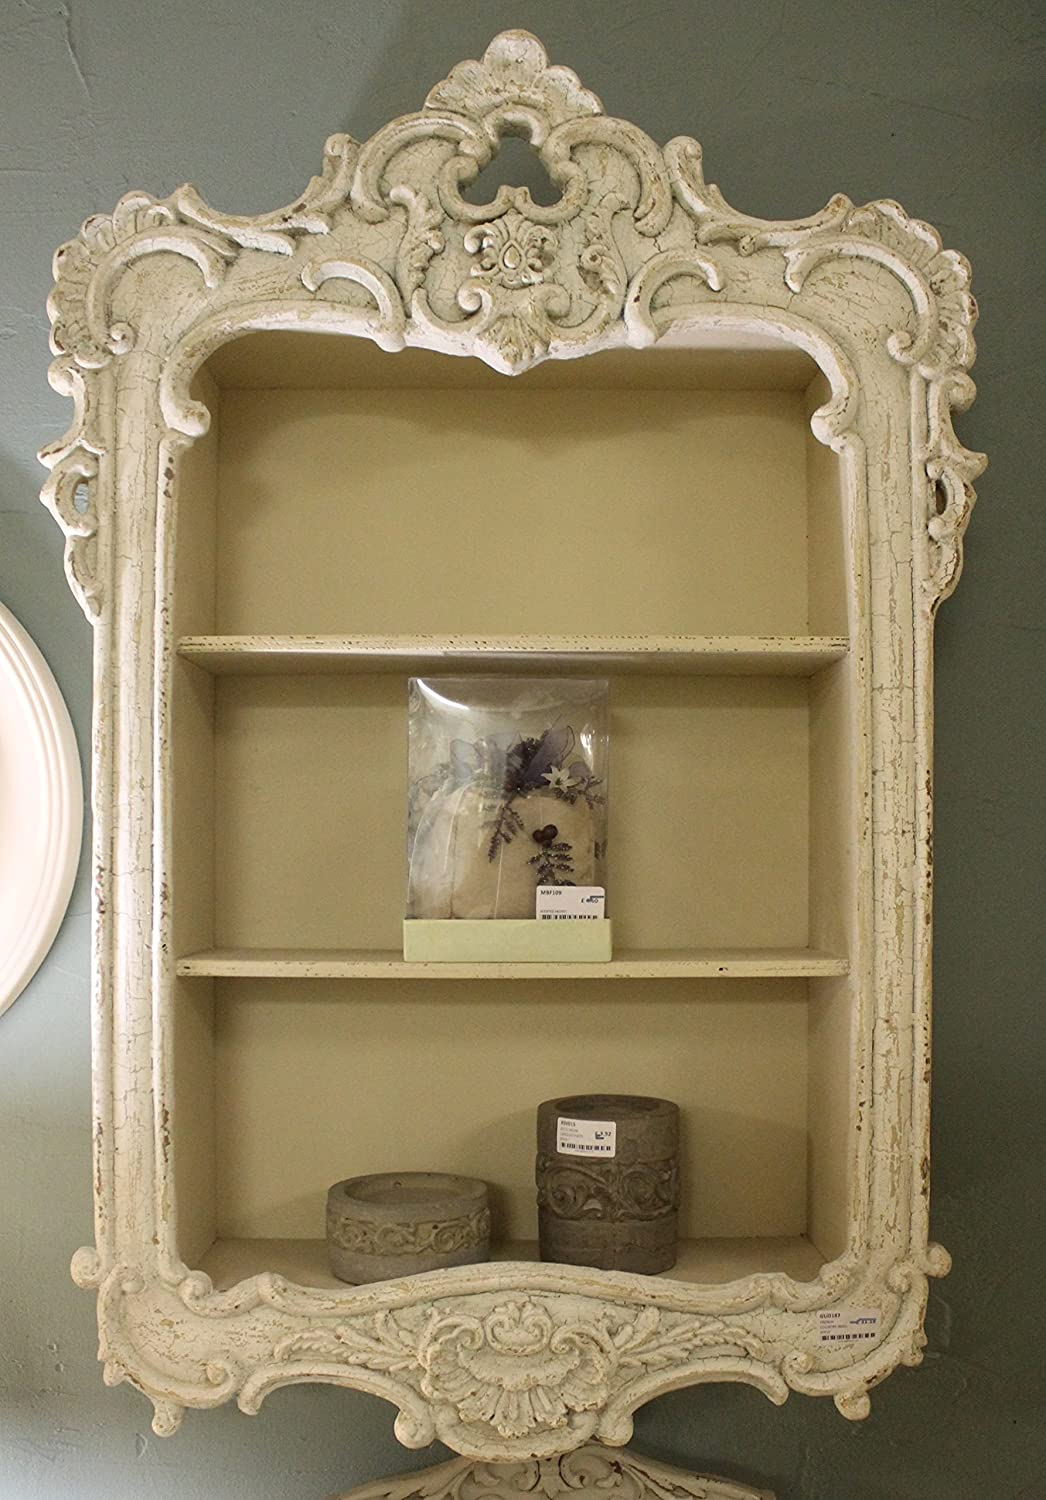 Antique white french country style carved wall shelf display unit antique white french country style carved wall shelf display unit shabby chic amazon kitchen home amipublicfo Image collections